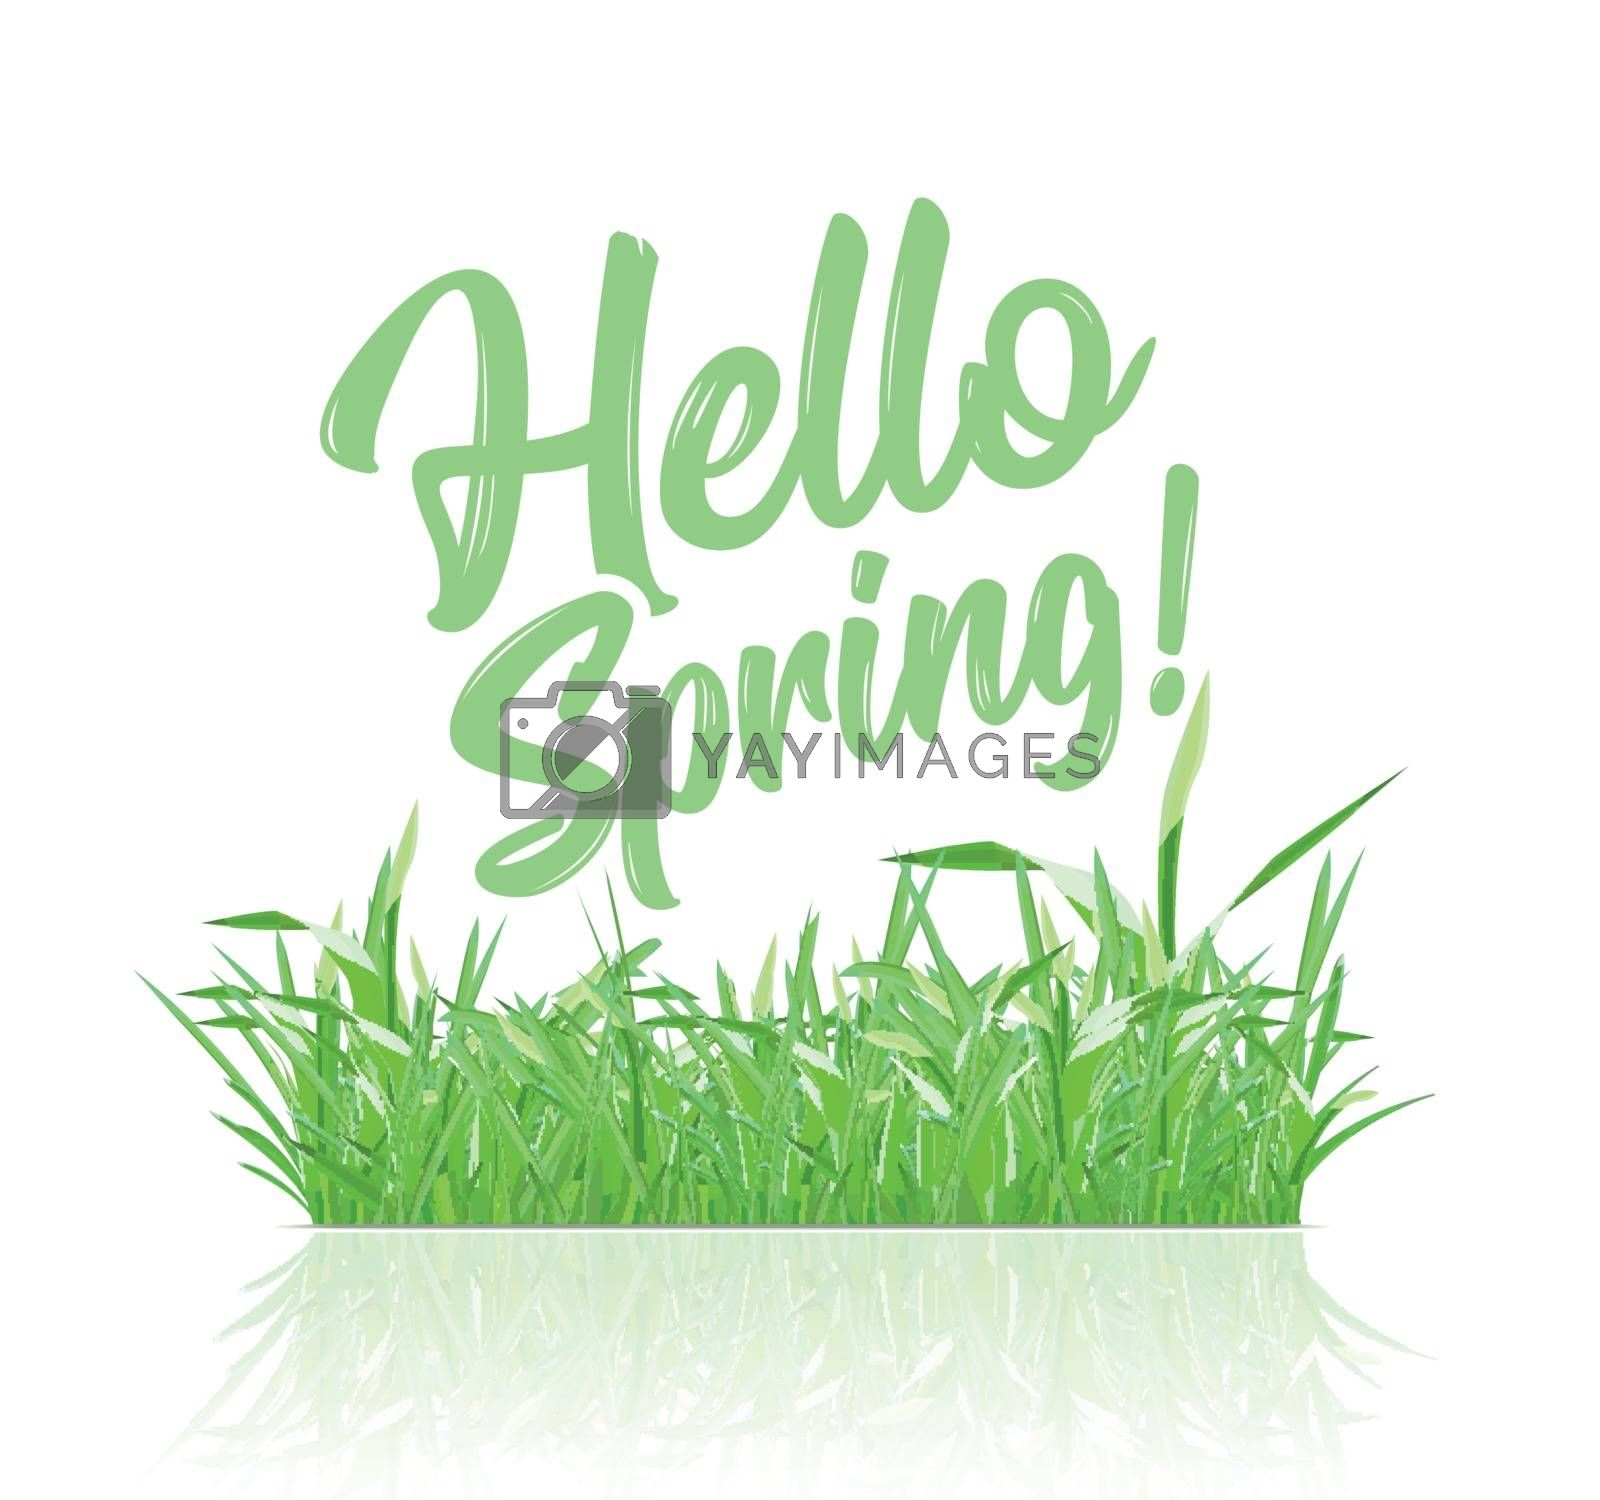 Text message hello spring, on a background of spring grass on a white background by sermax55